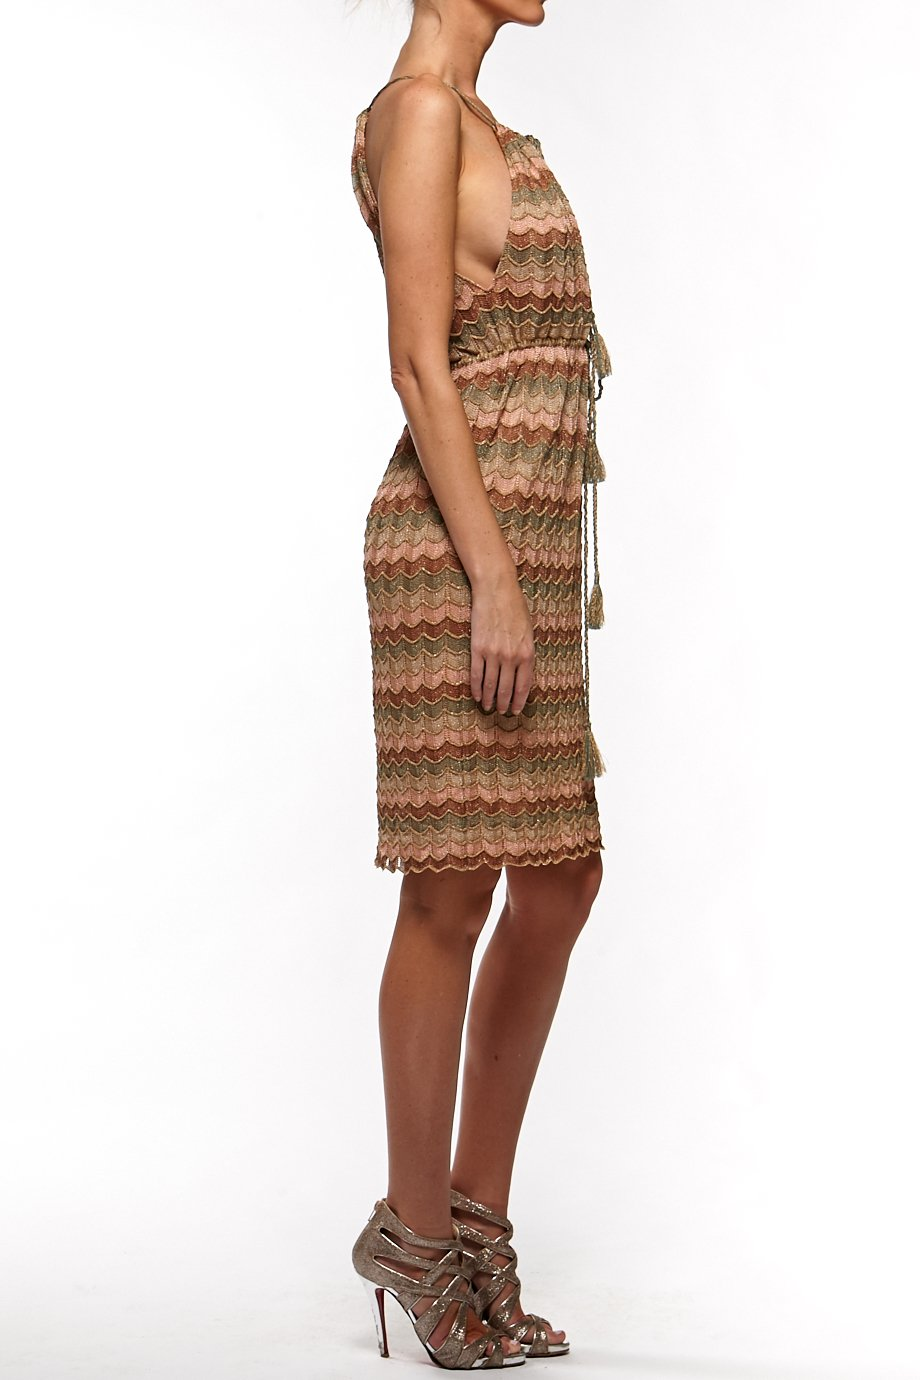 Missoni Olive and gold short dress